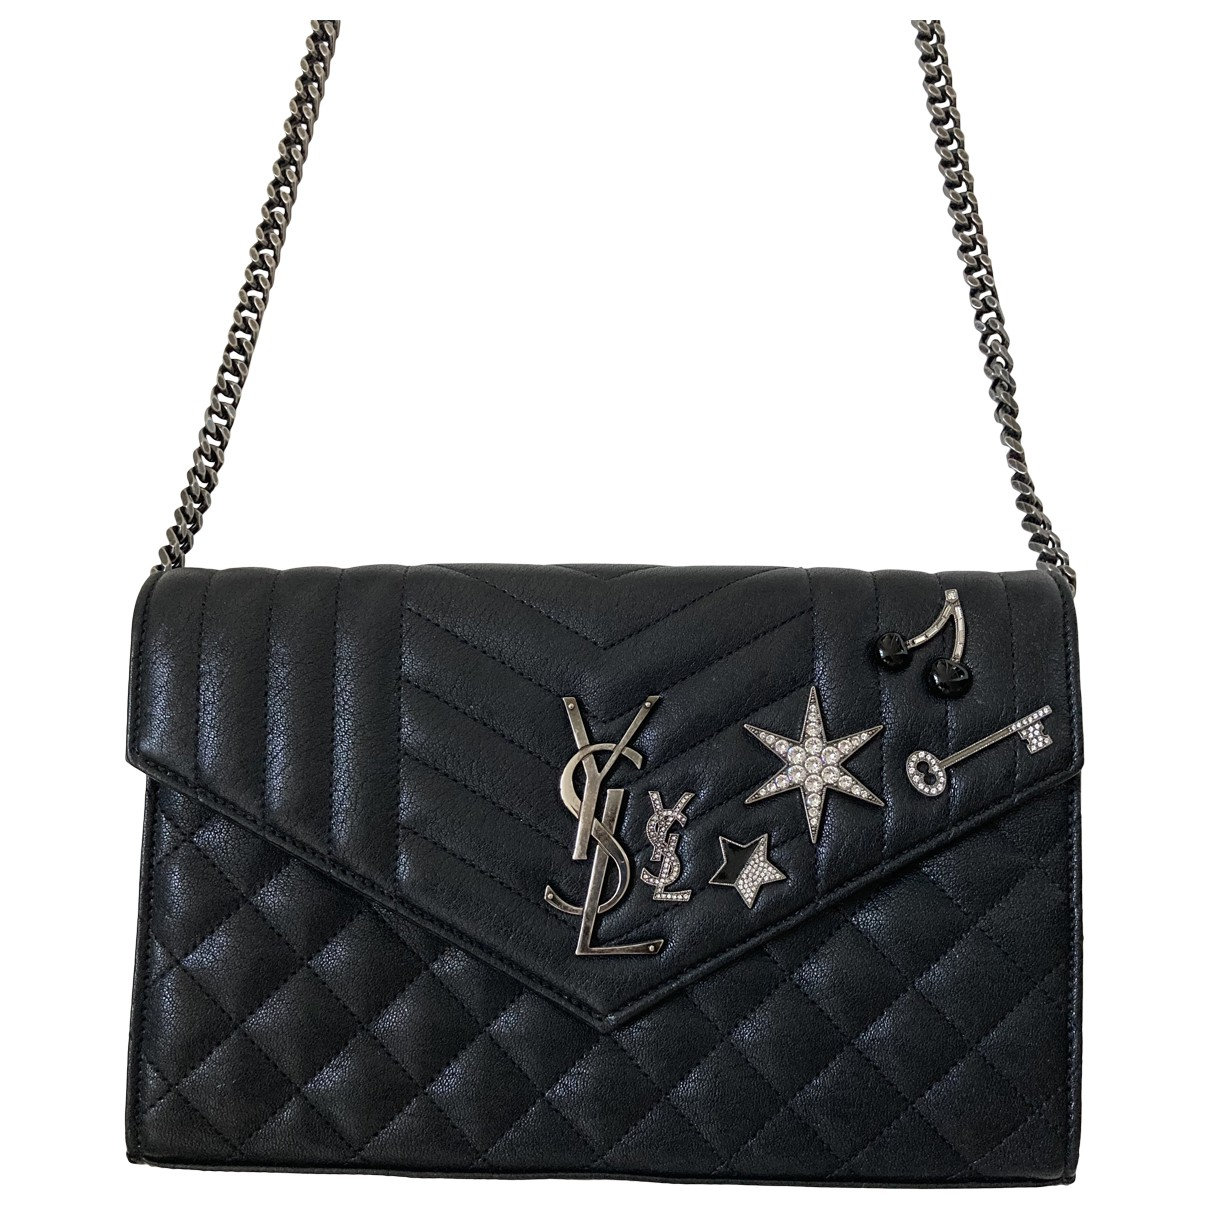 Saint Laurent Portefeuille enveloppe monogram Black Leather handbag for Women \N